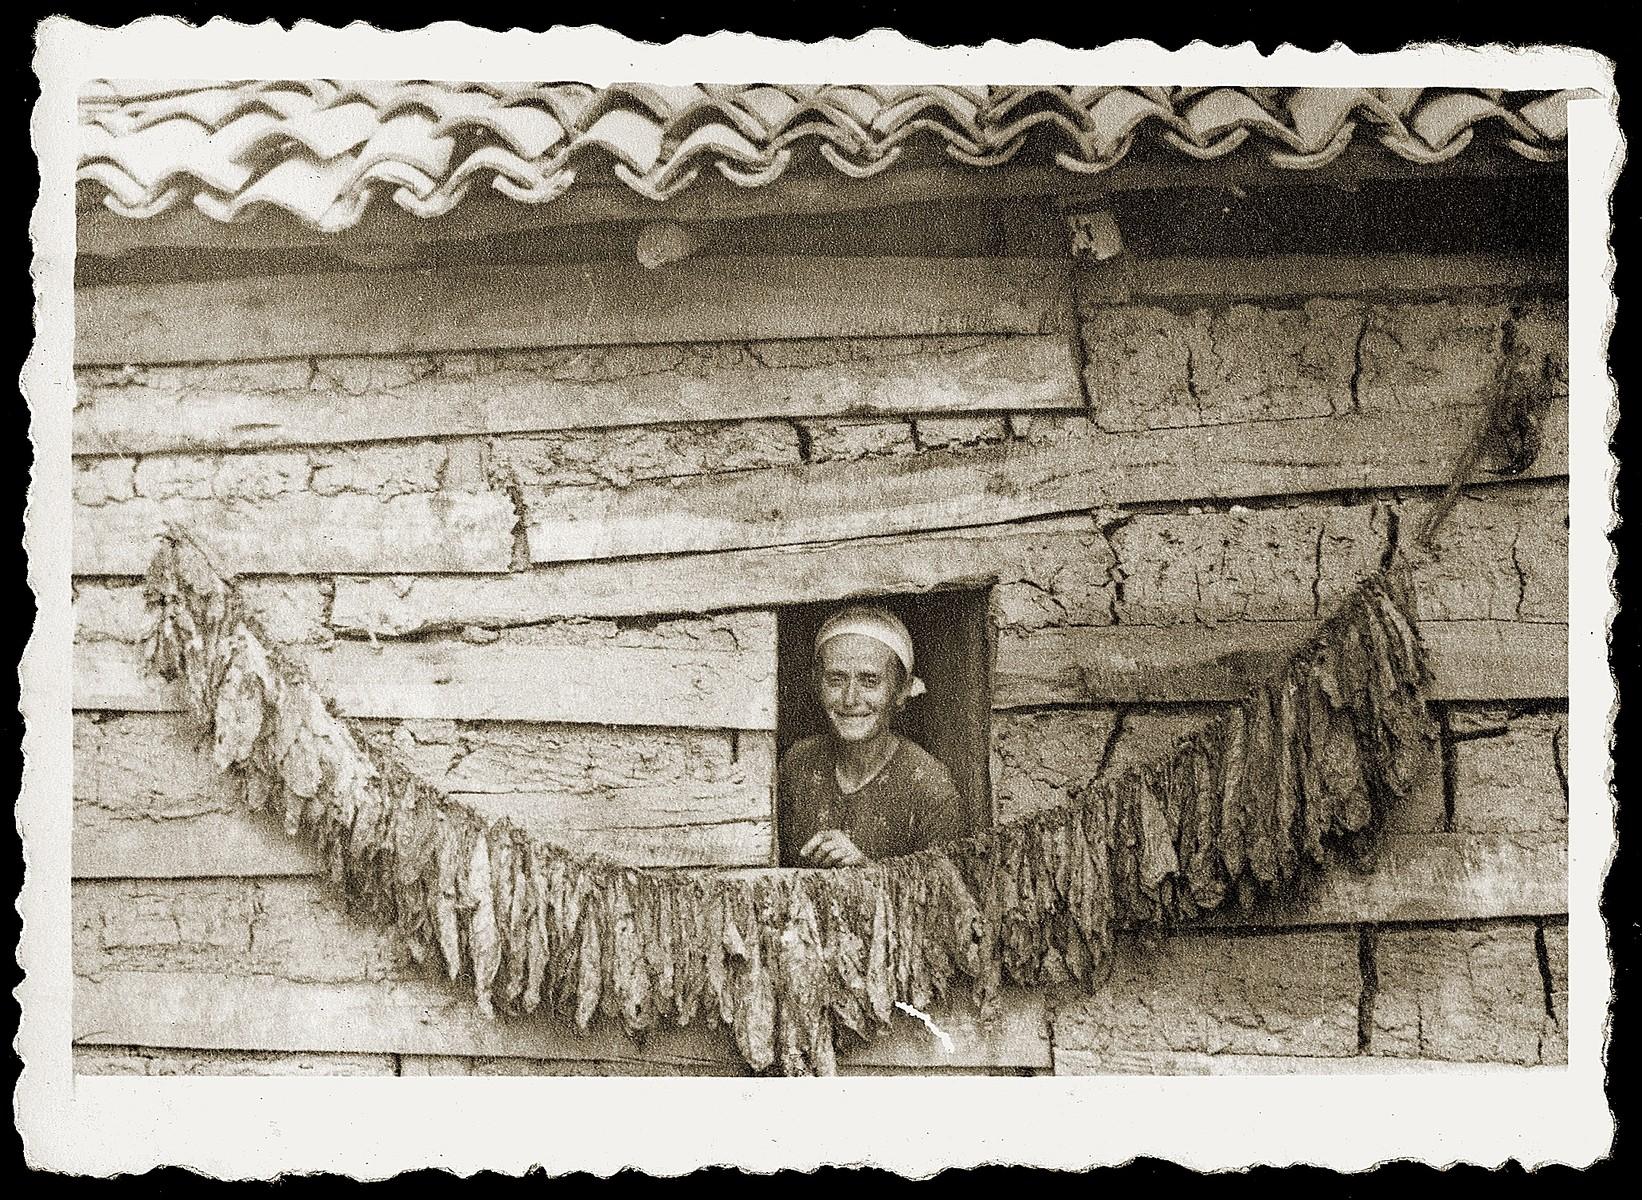 Fatima Veseli dries tobacco leaves outside her home in the mountain village of Kruja.  Fatima is the mother of Refik Veseli, who sheltered the Mandil family in the last year of the war.